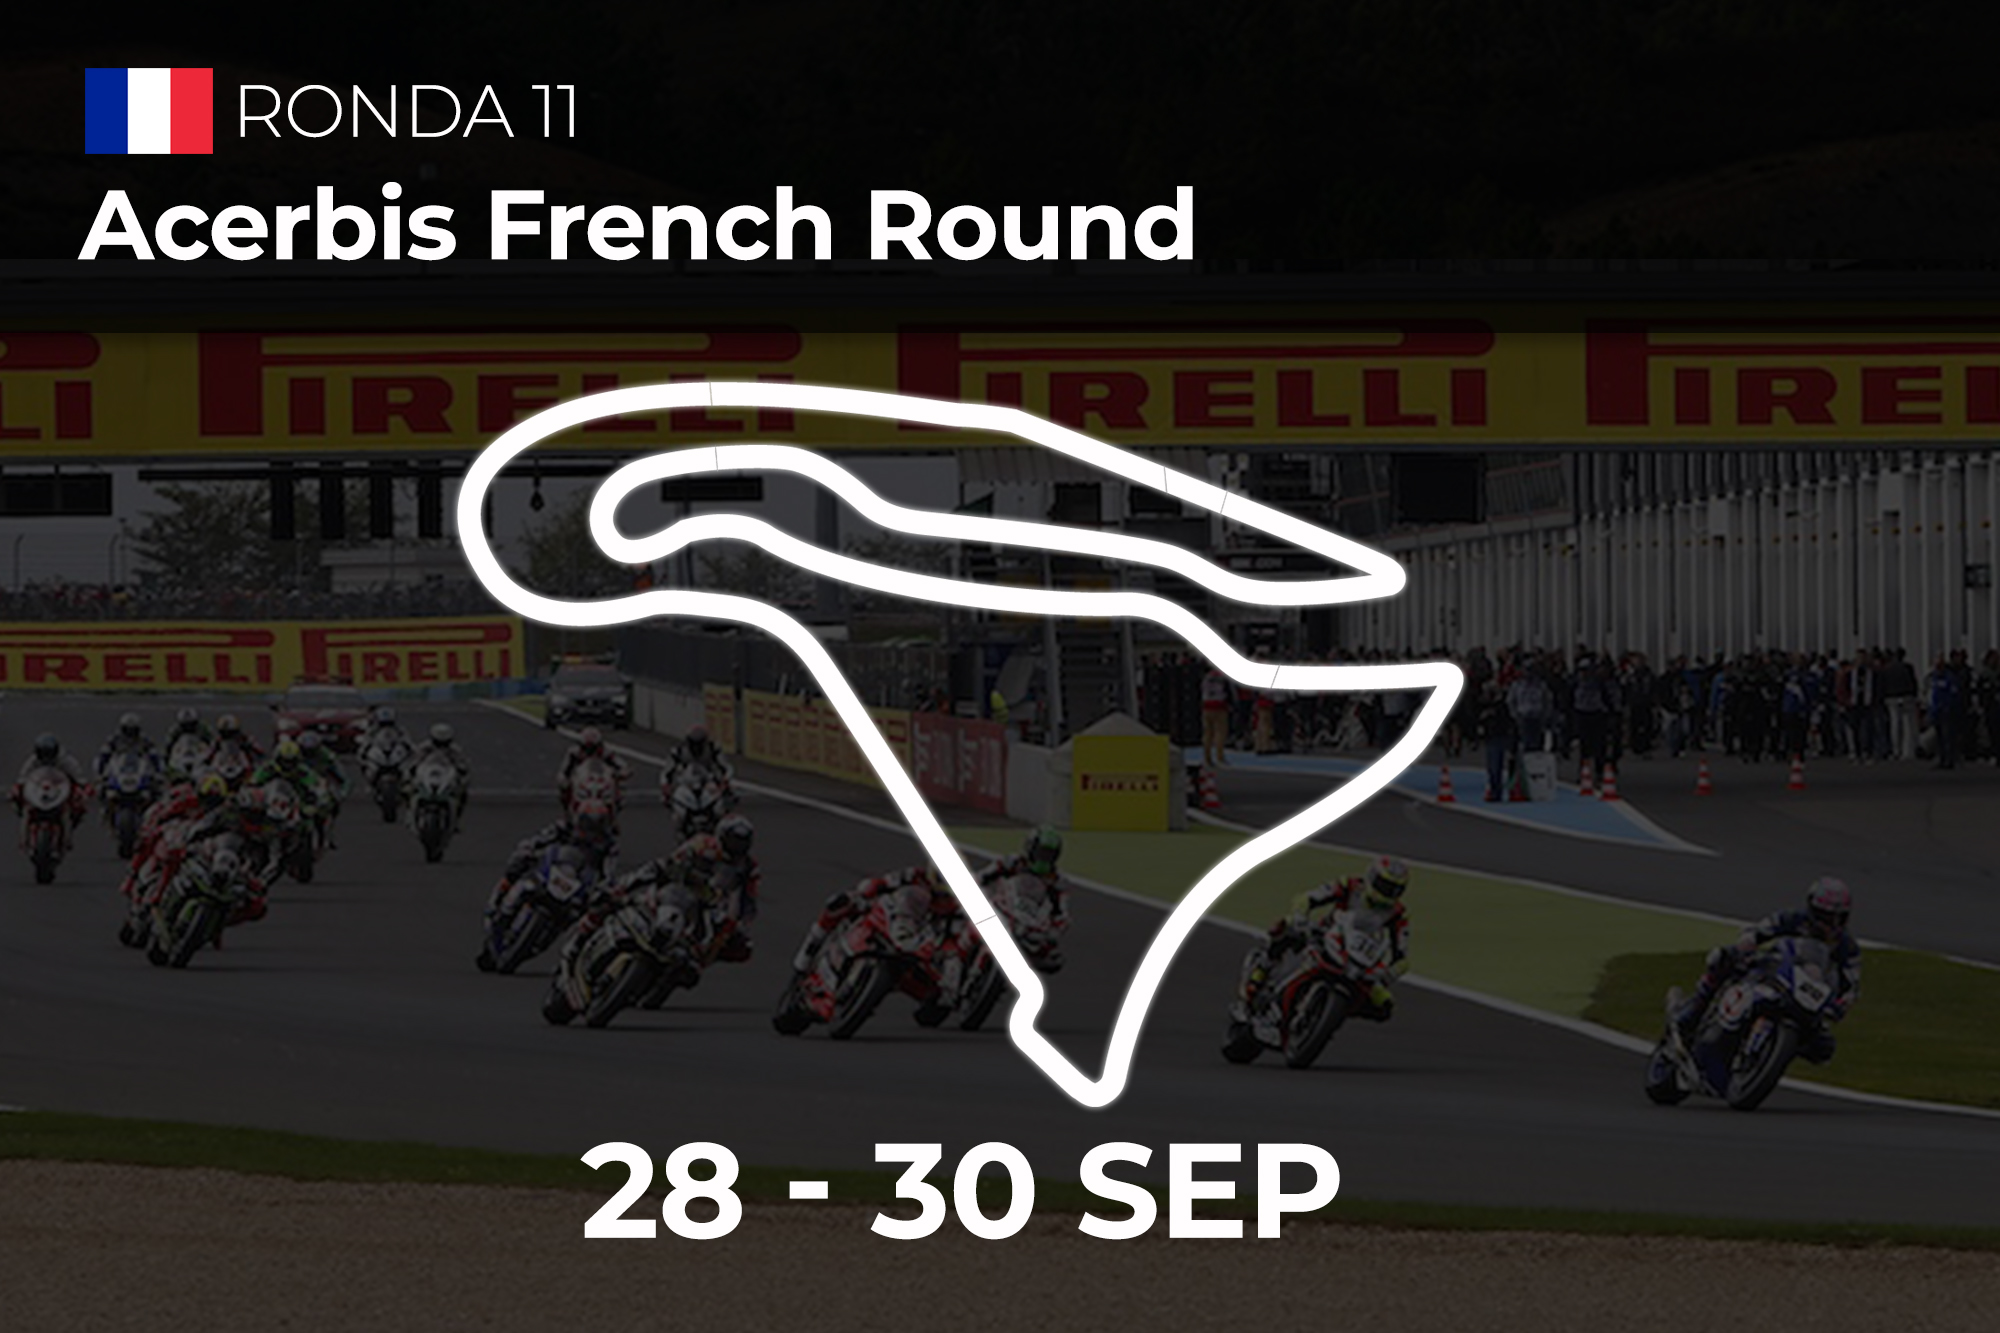 French round Acerbis: 28-30 Sep